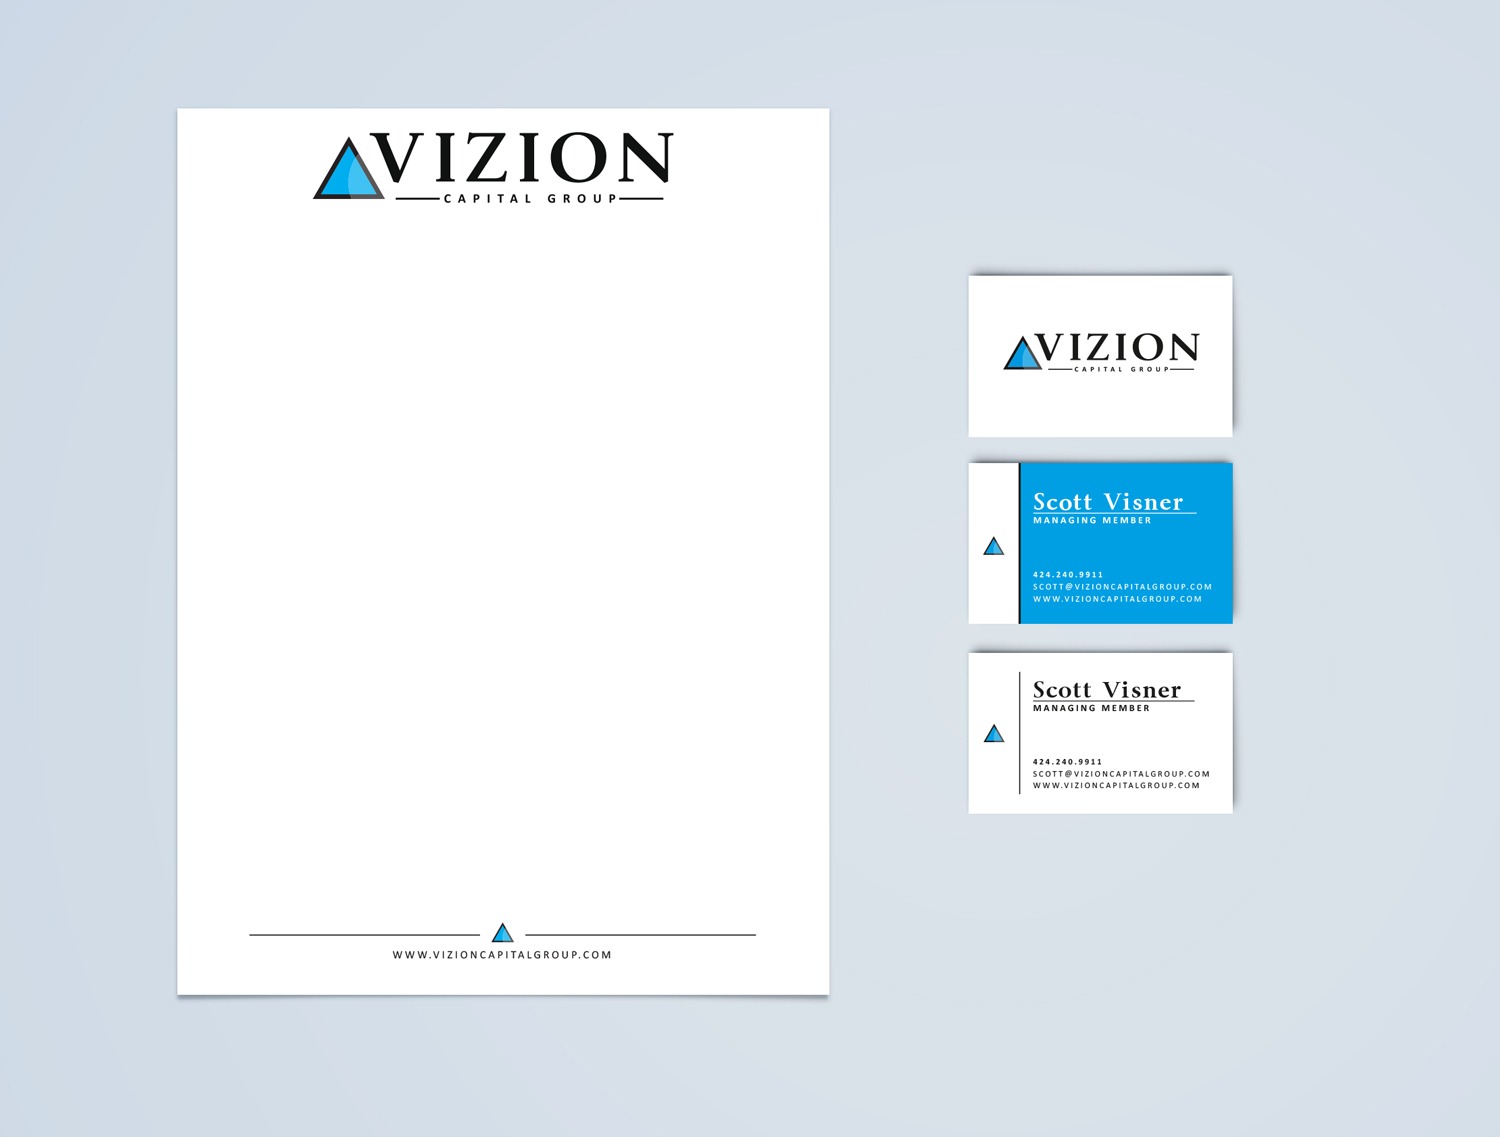 vizion_brandingidentitymock-up